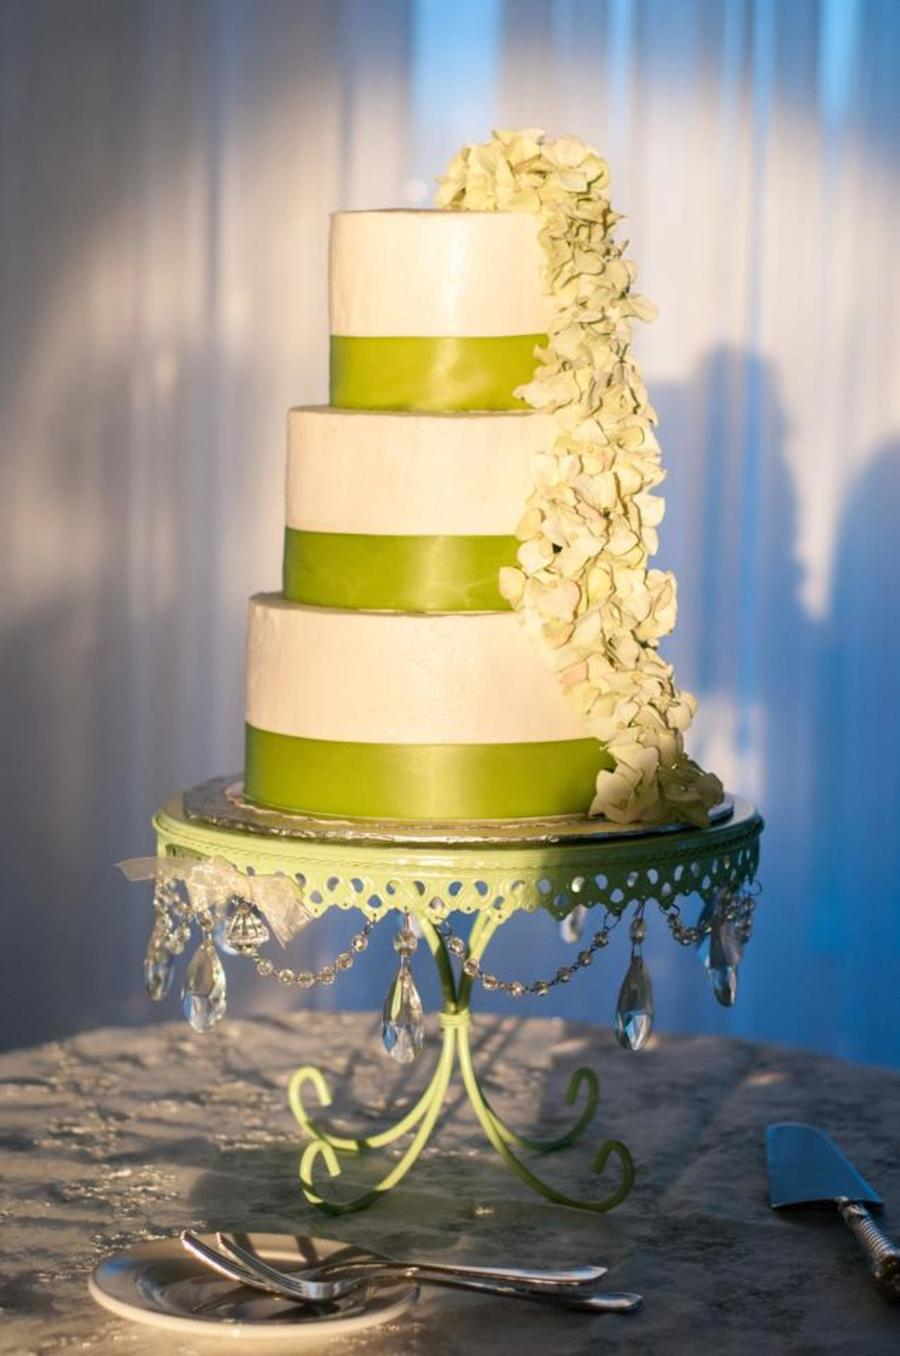 Buttercream Wedding Cake With Ribbon And Hydrangea Flowers ...